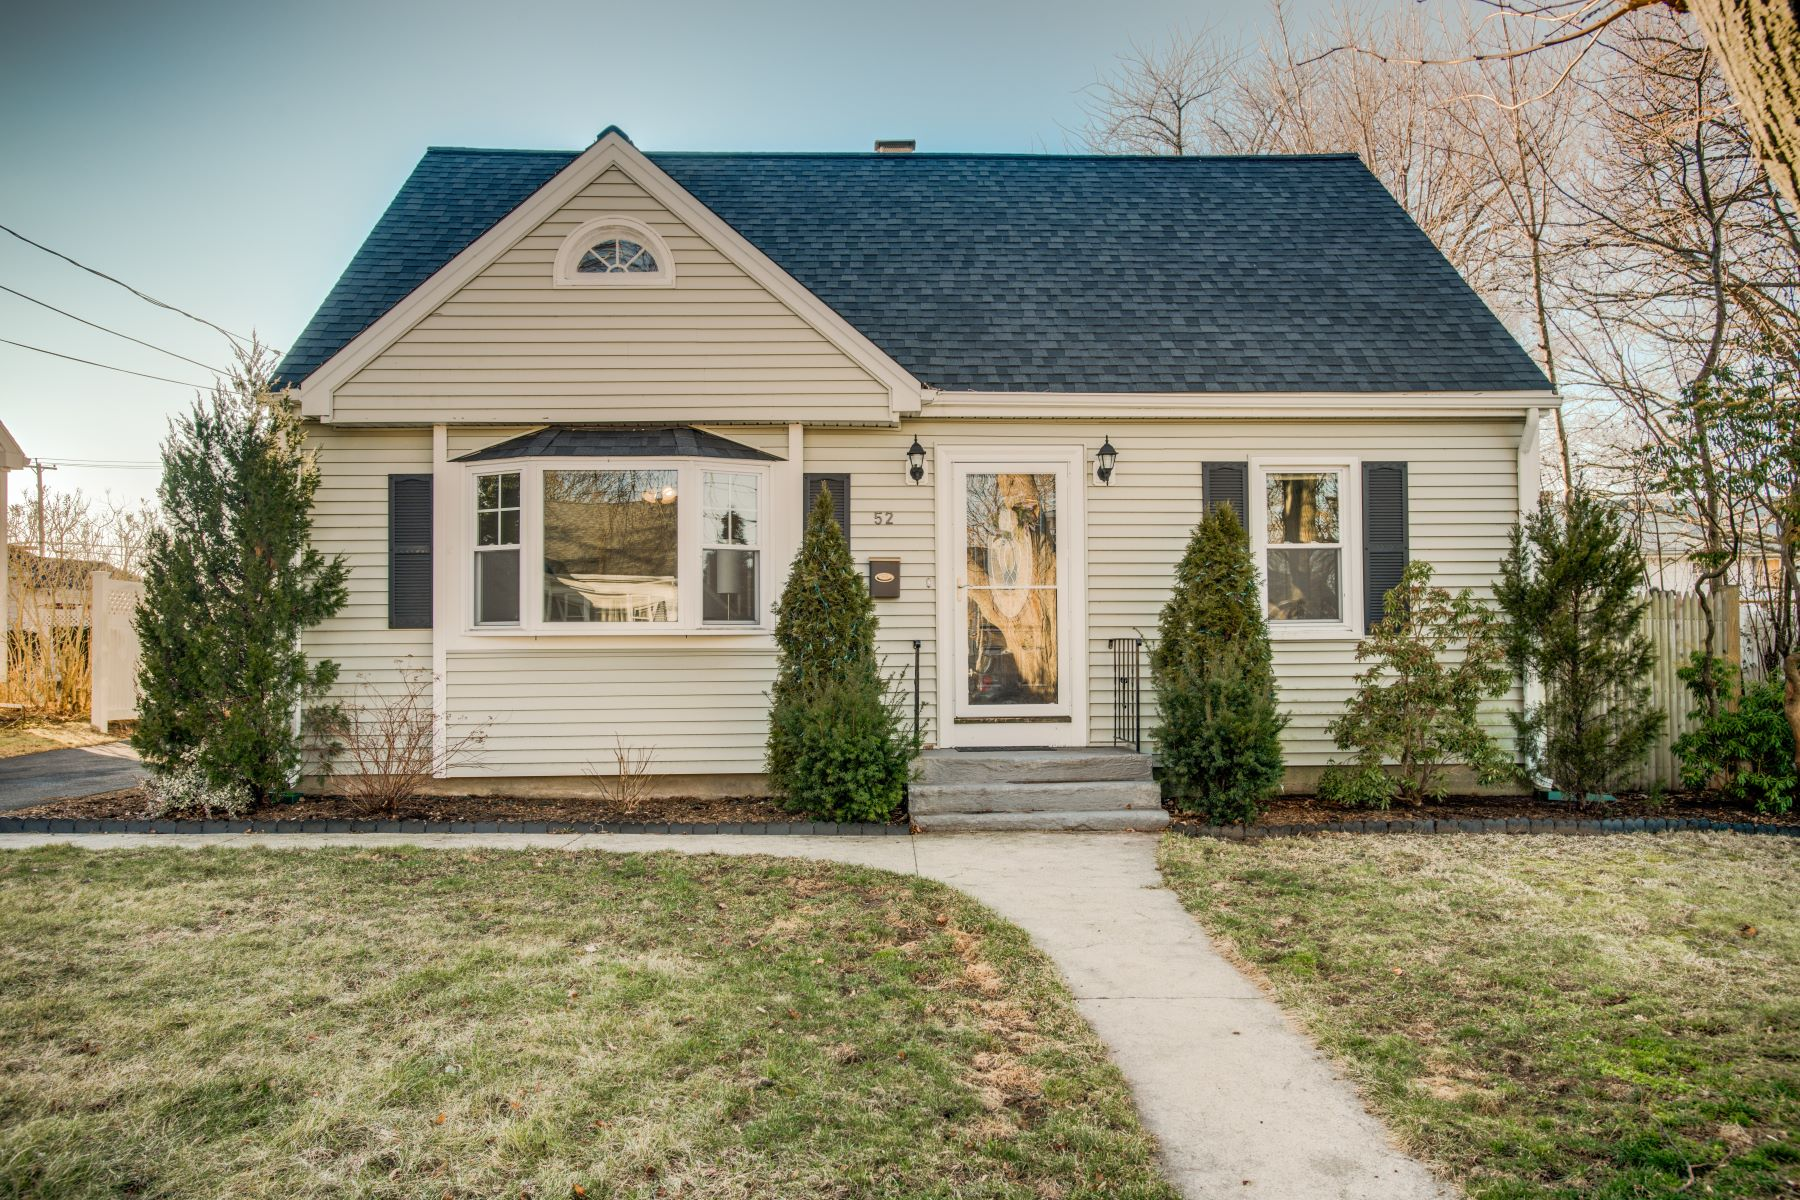 Single Family Homes for Sale at 52 Linden Street, Middletown, RI Middletown, Rhode Island 02842 United States